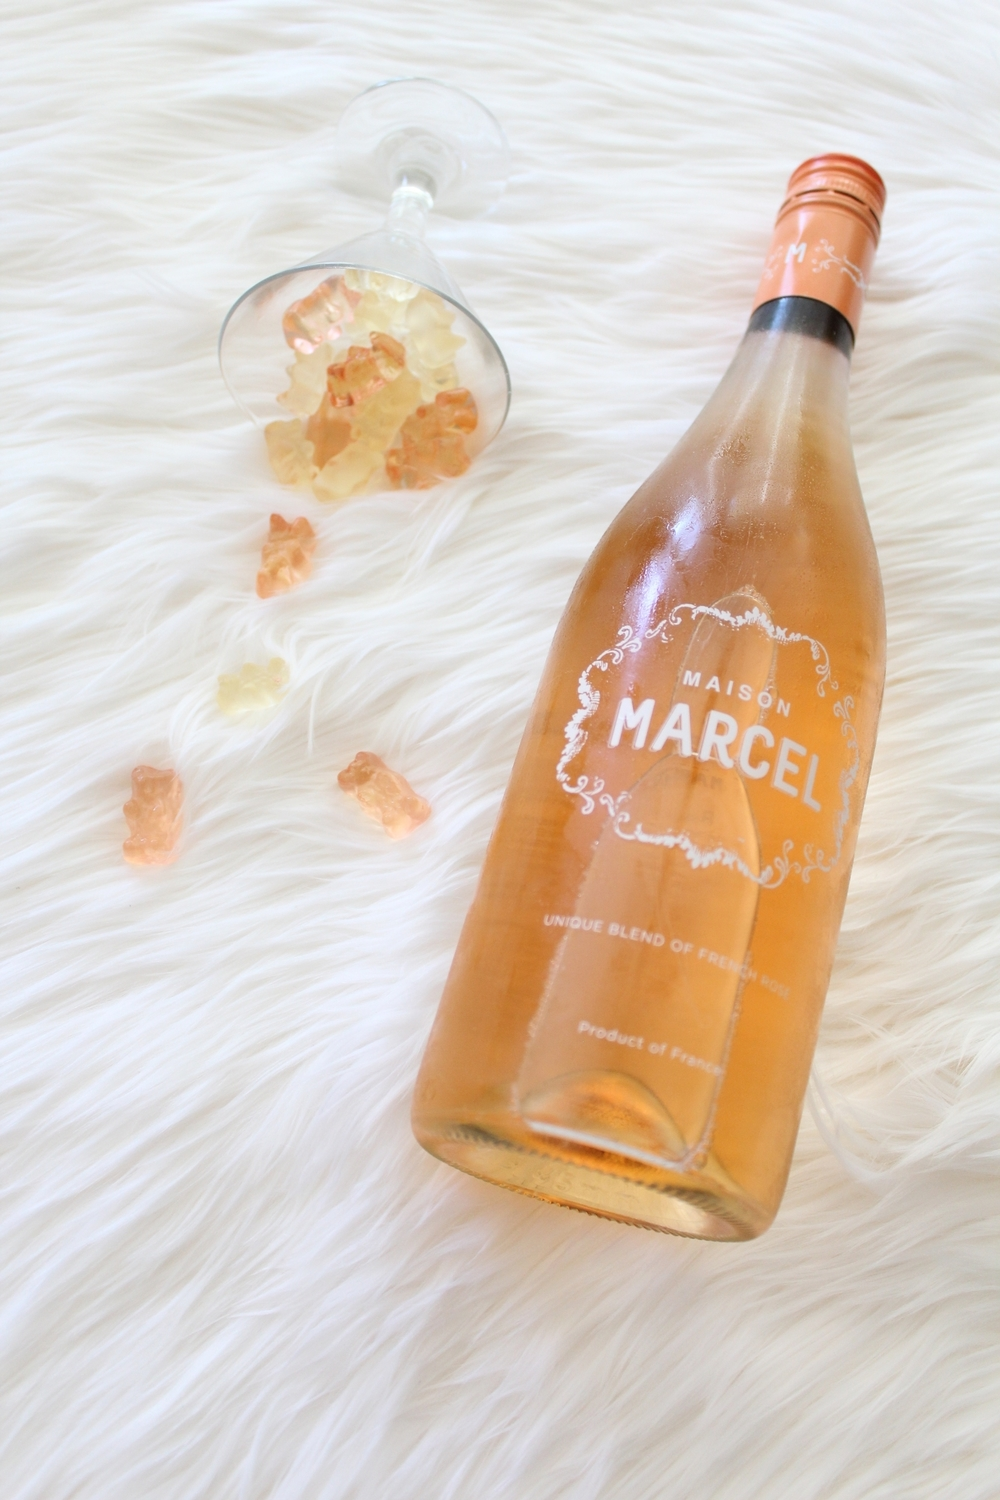 MAISON Marcel Rosé Gummy Bears on The Gilded Bellini